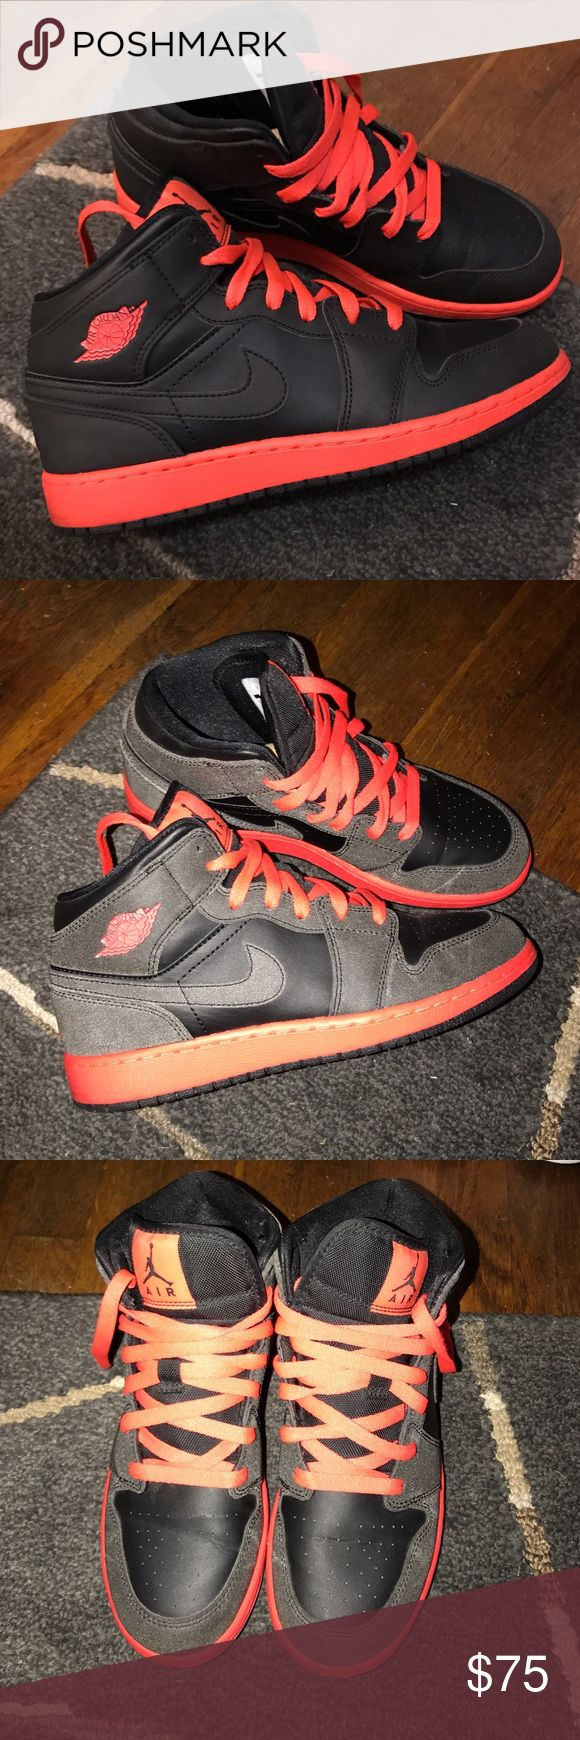 Jordan 1 black & red, size 5.5 Jordan 1 black and red. Size 5.5, worn 3 times, great condition! No box. Changes colors with flash. Nike Shoes Athletic Shoes